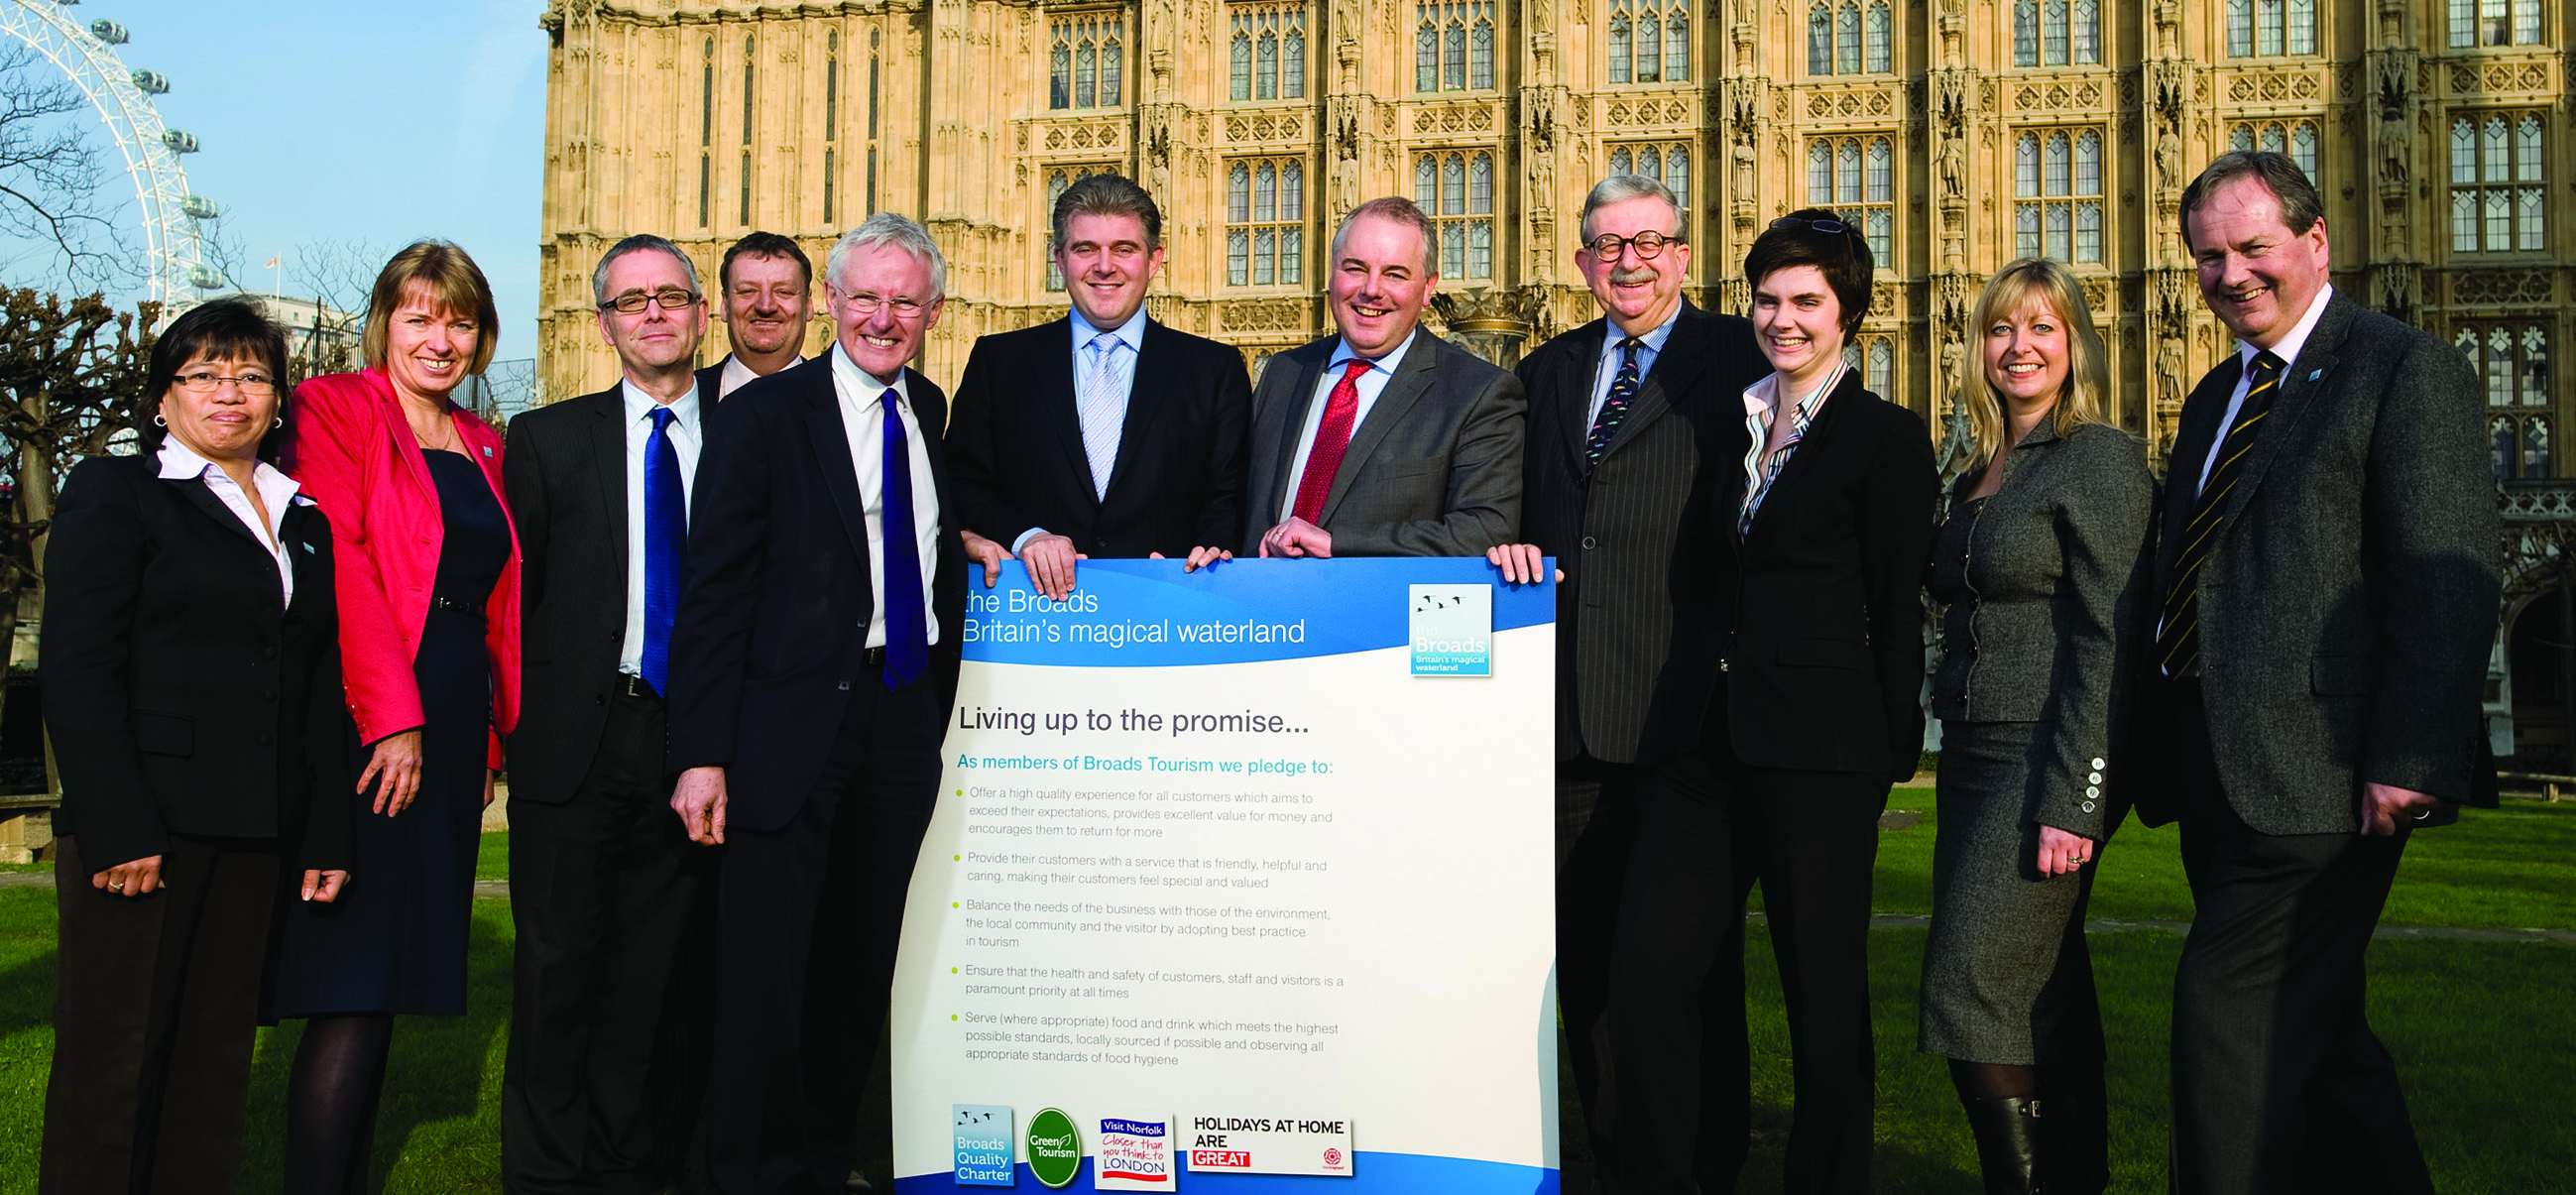 Broads Tourism Quality Pledge Signing